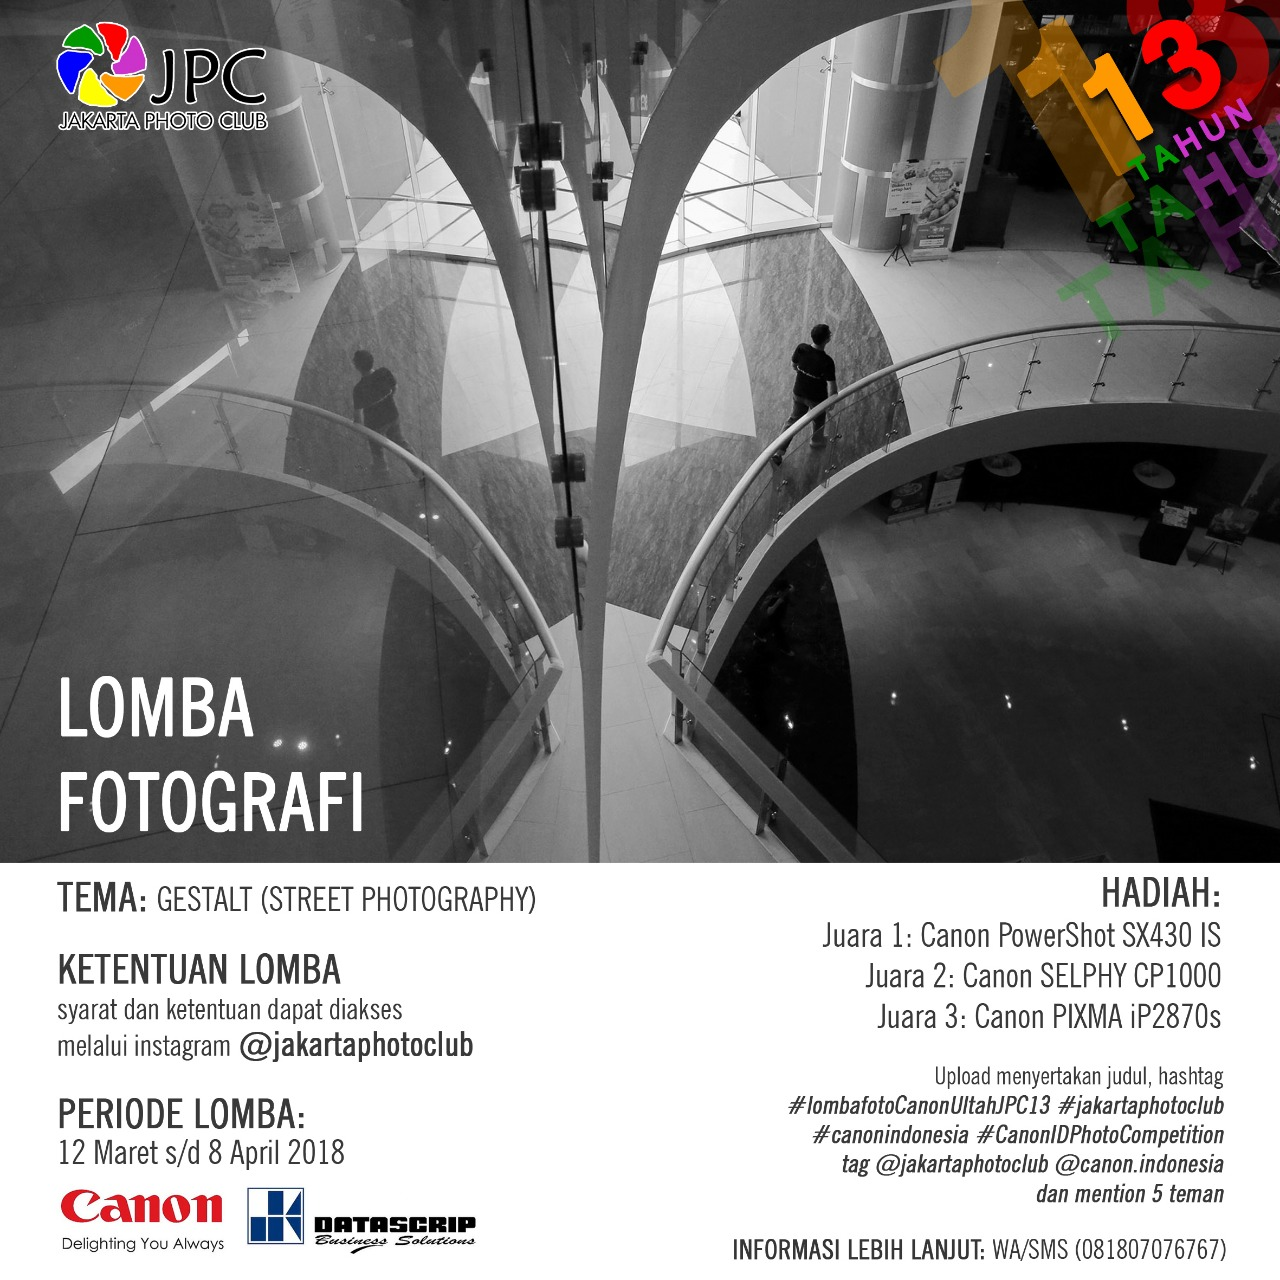 Jakata school of photography info lomba foto